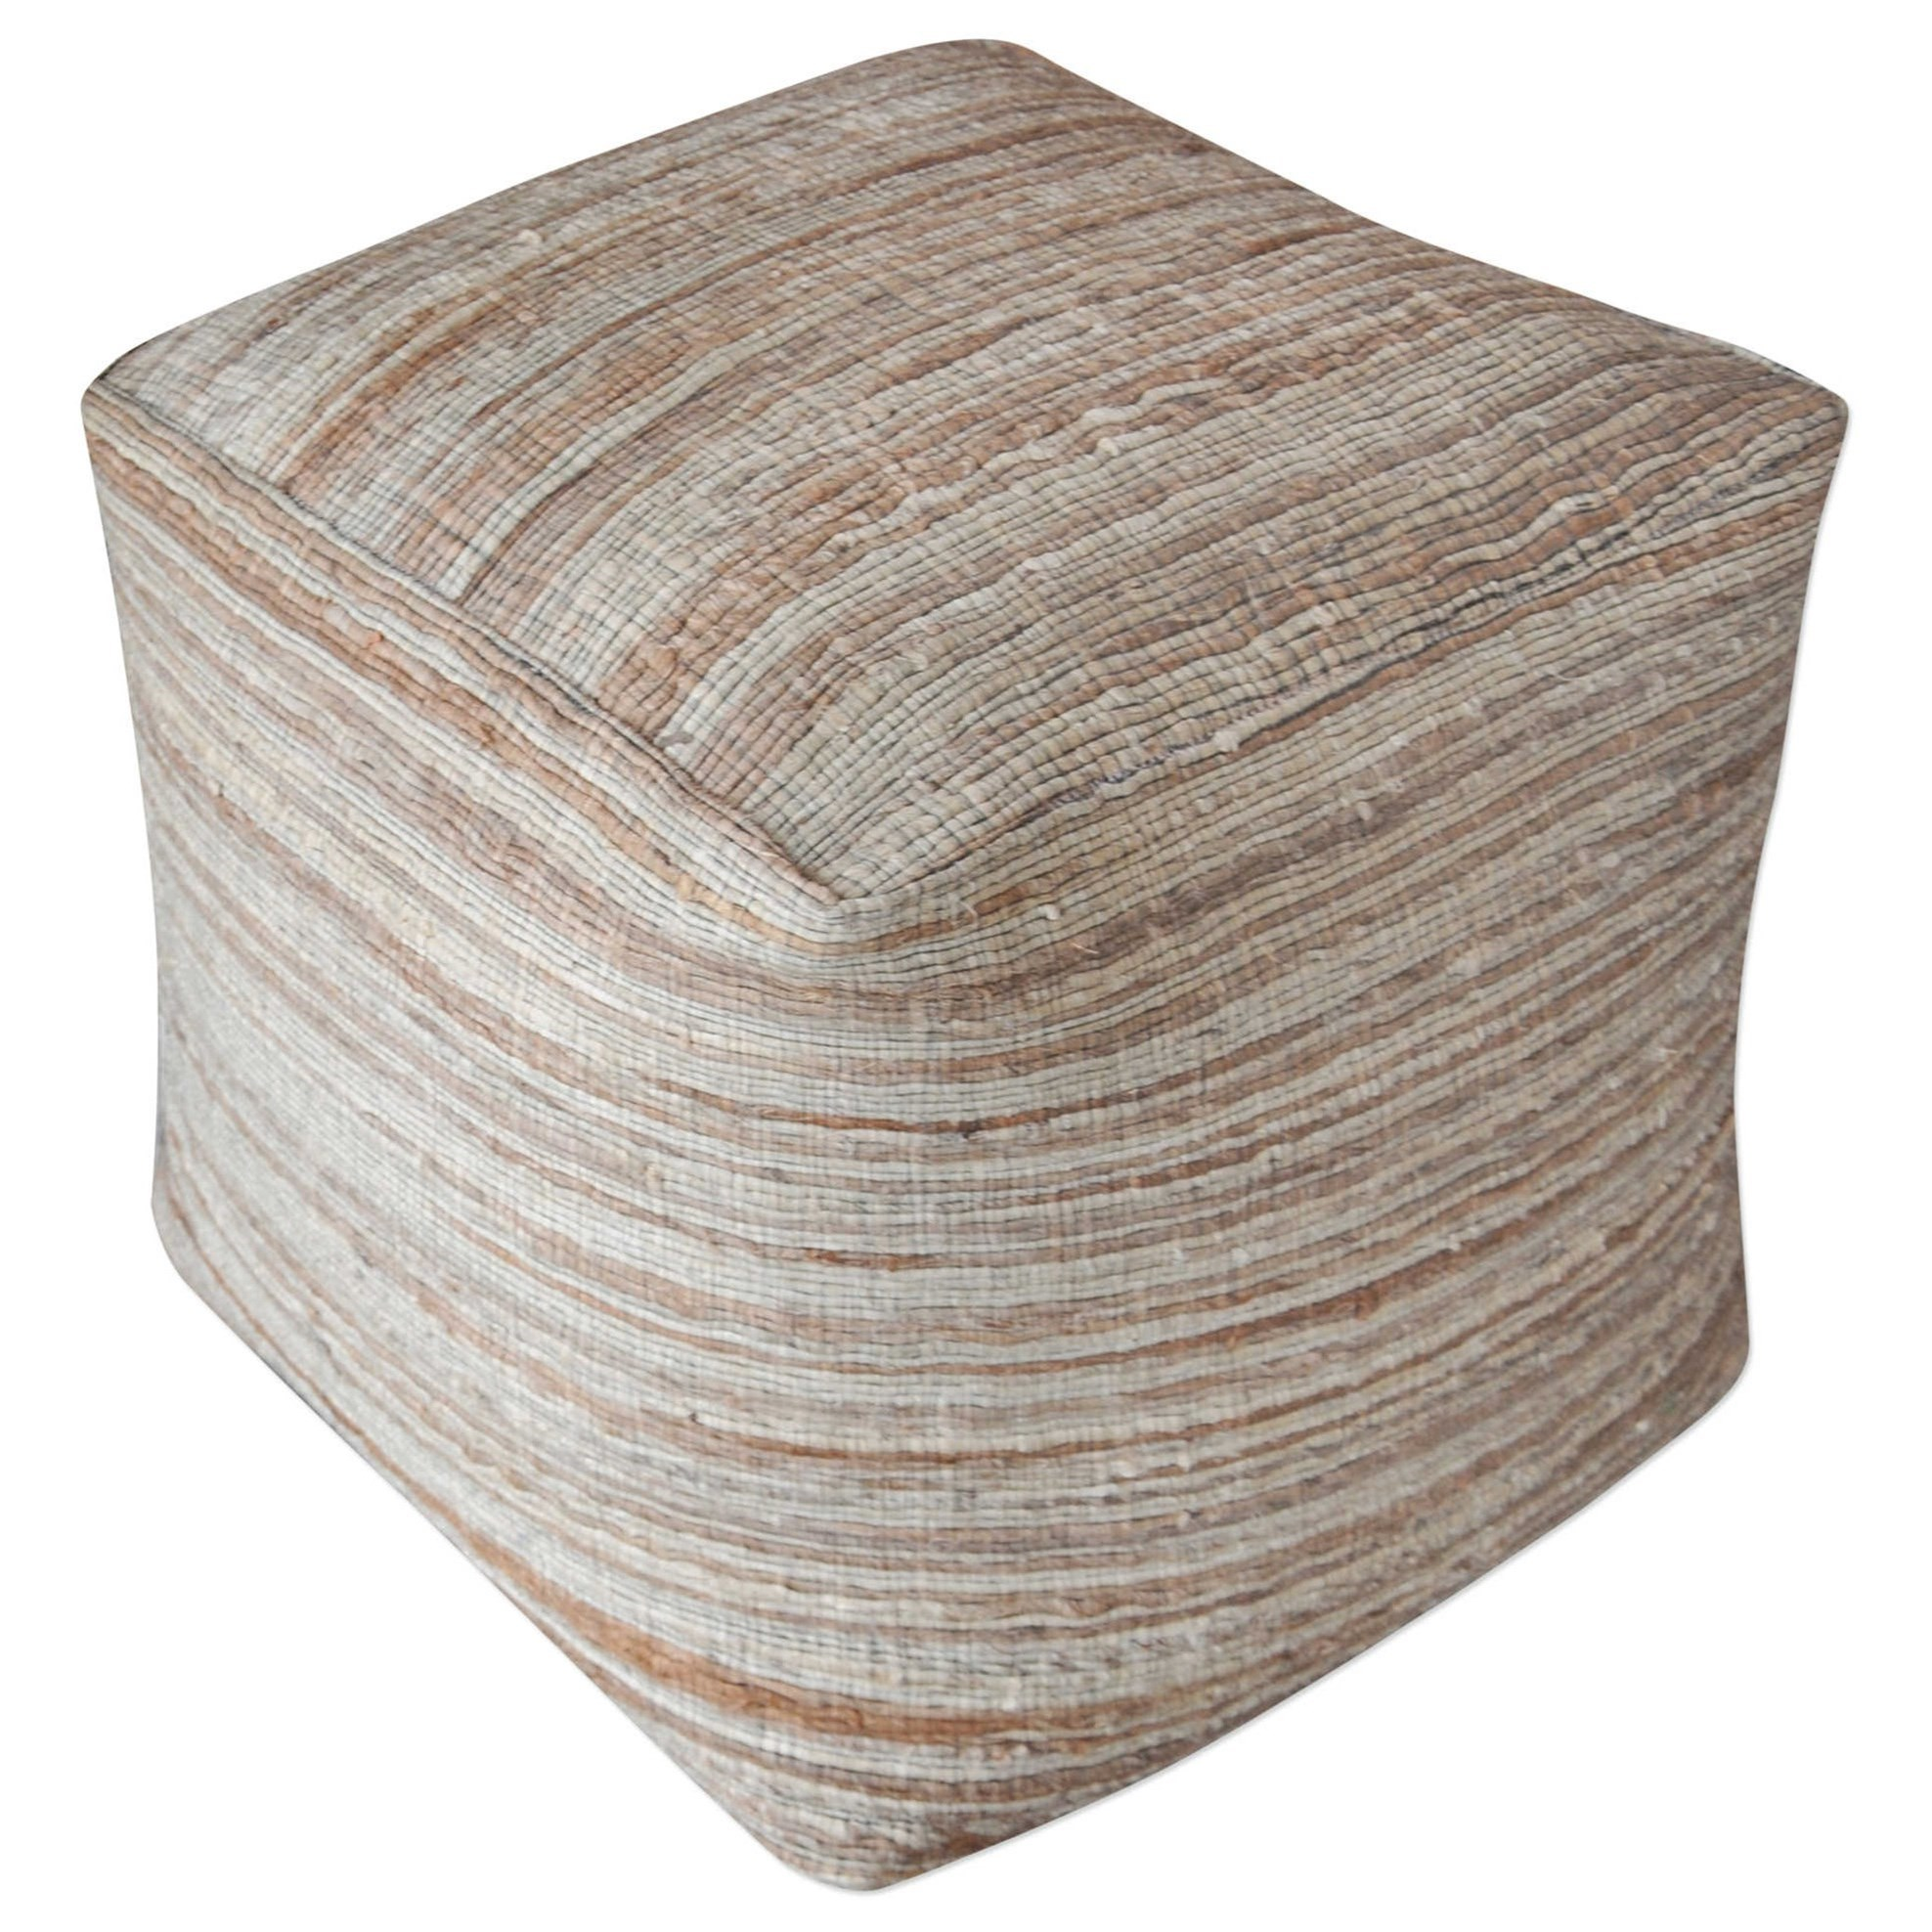 Accent Furniture - Ottomans Shiro Beige Pouf by Uttermost at Upper Room Home Furnishings